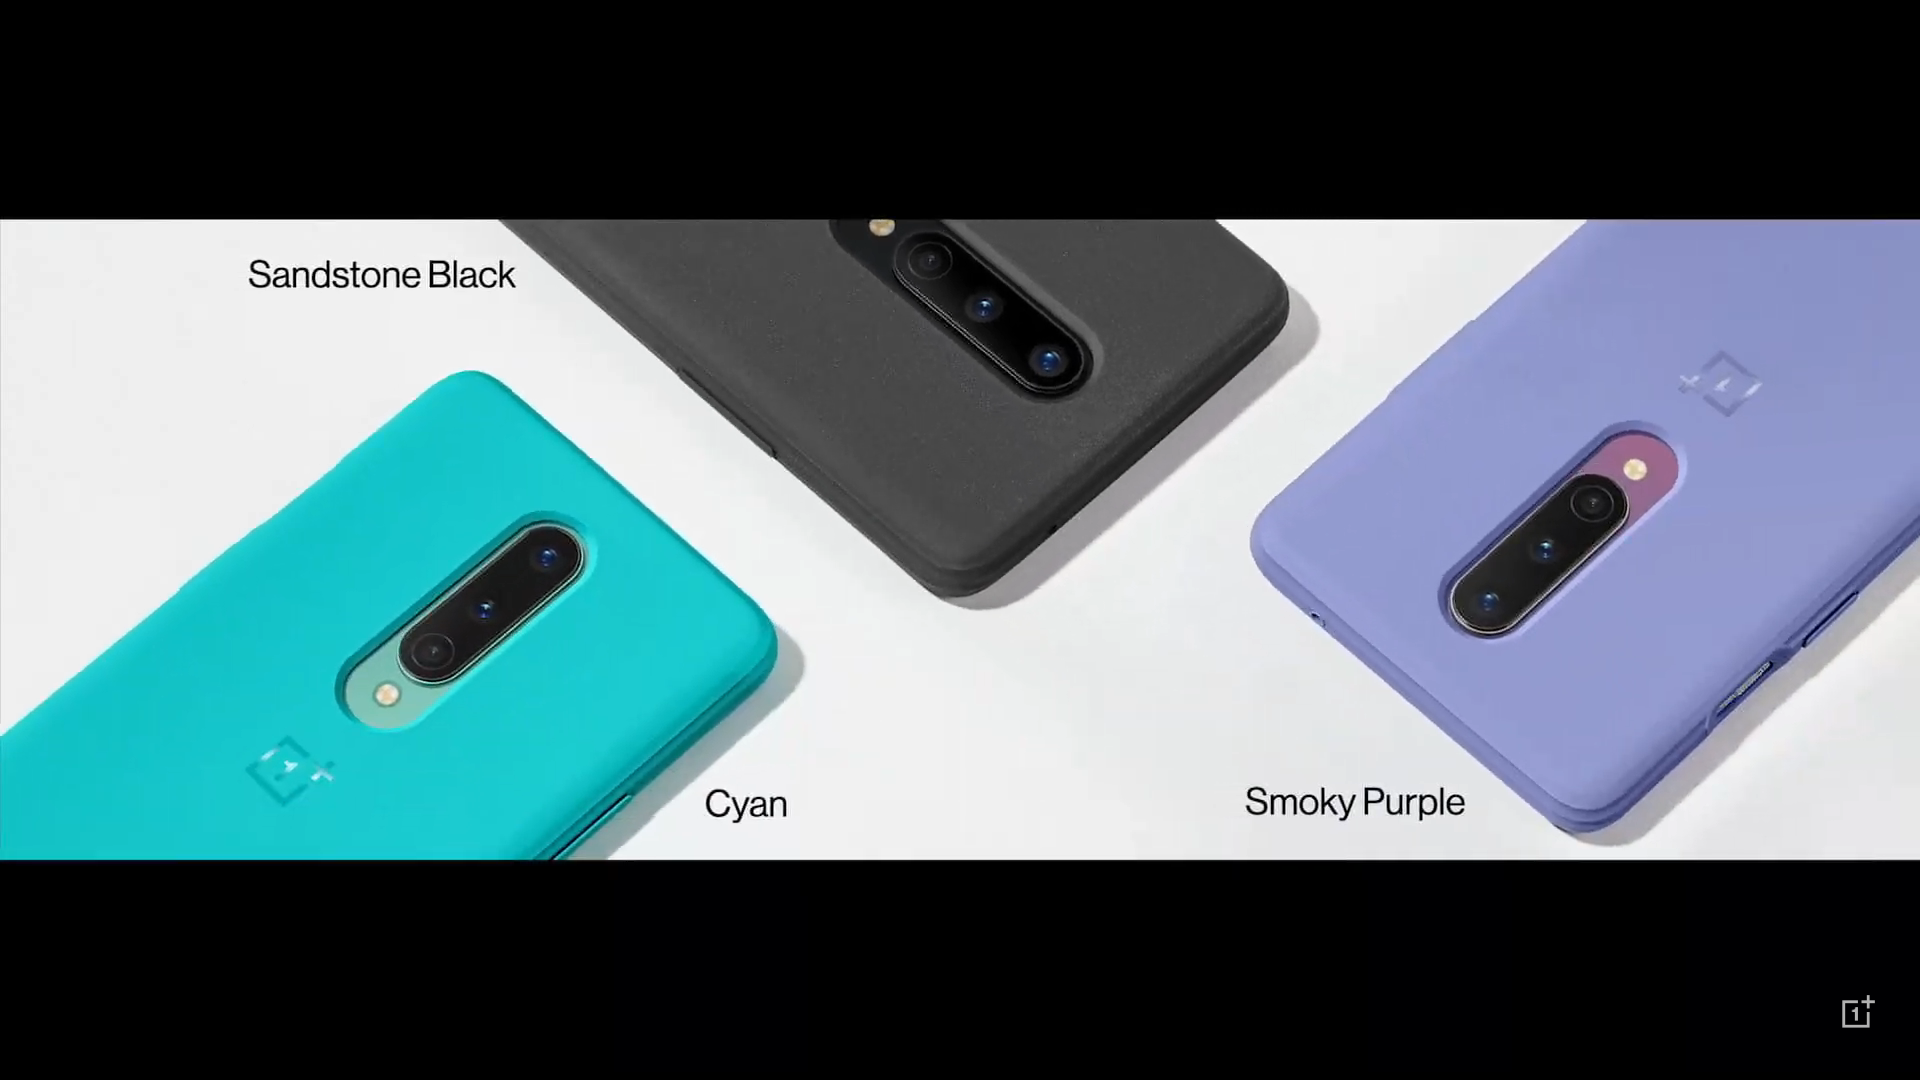 Three cases in blacky, cyan, and purple.